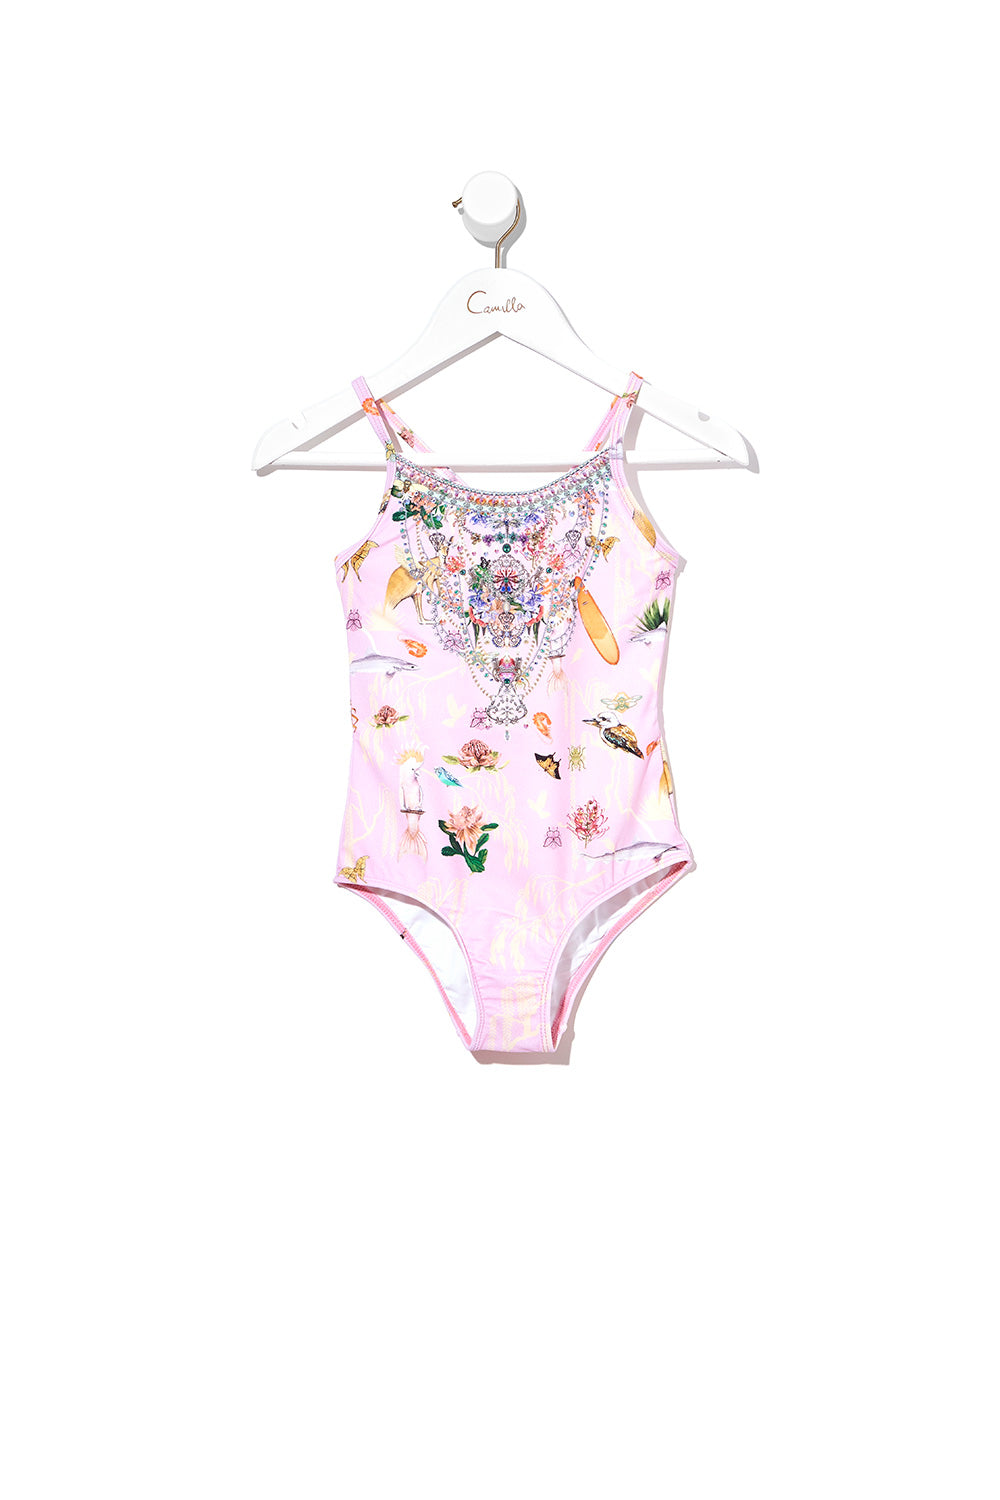 INFANTS ROUND NECK ONE PIECE OVER THE RAINBOW